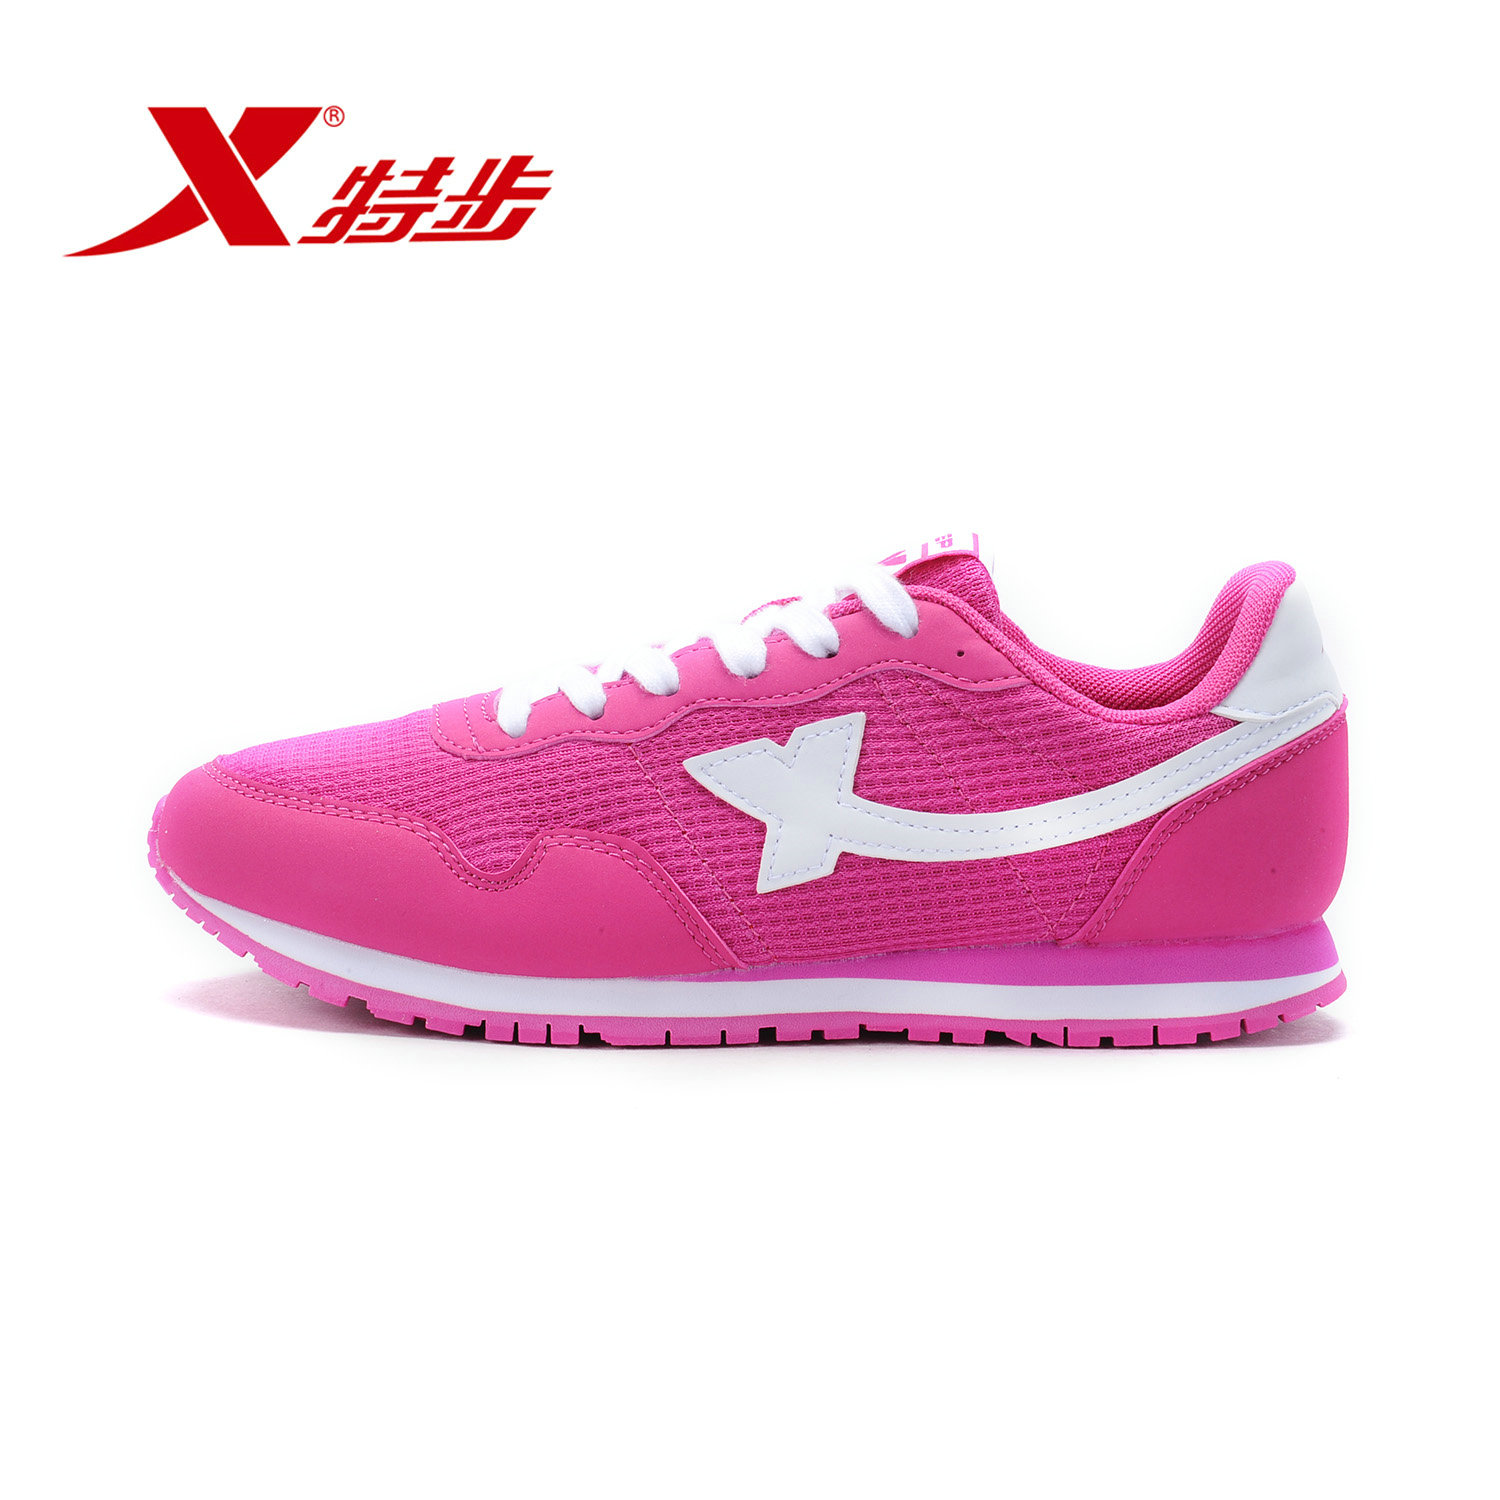 Xtep shoes authentic 2016 new running shoes sneakers ms. spring technology running shoes racing shoes training shoes